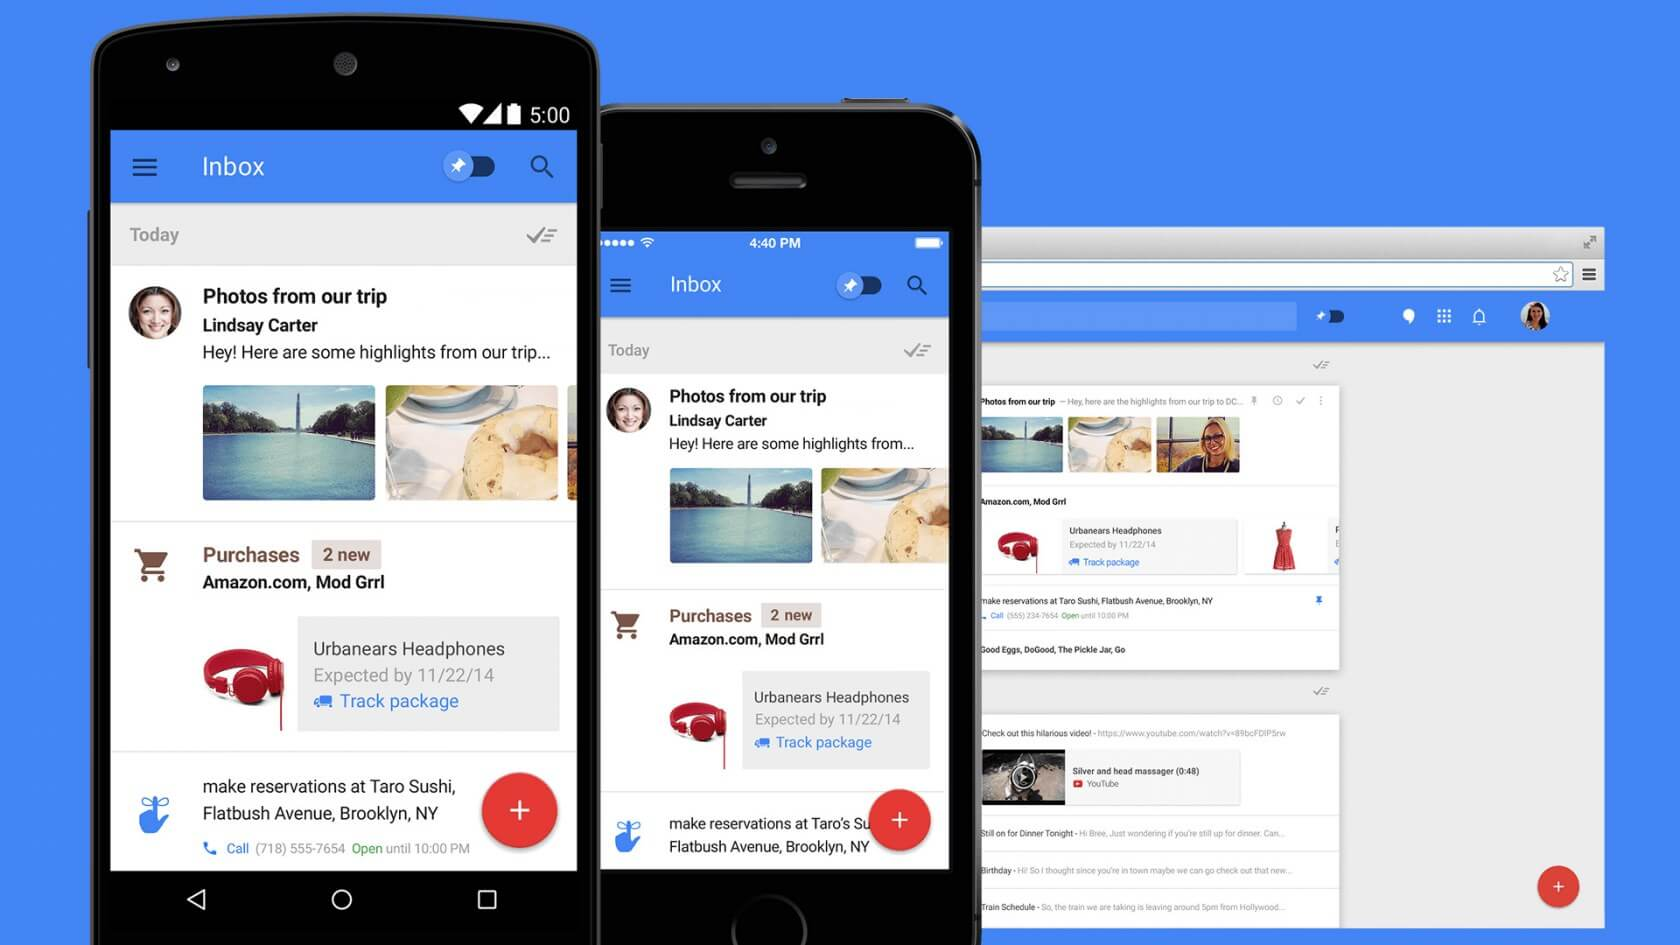 Google's Inbox Email App Will Cease To Exist, Come March 2019